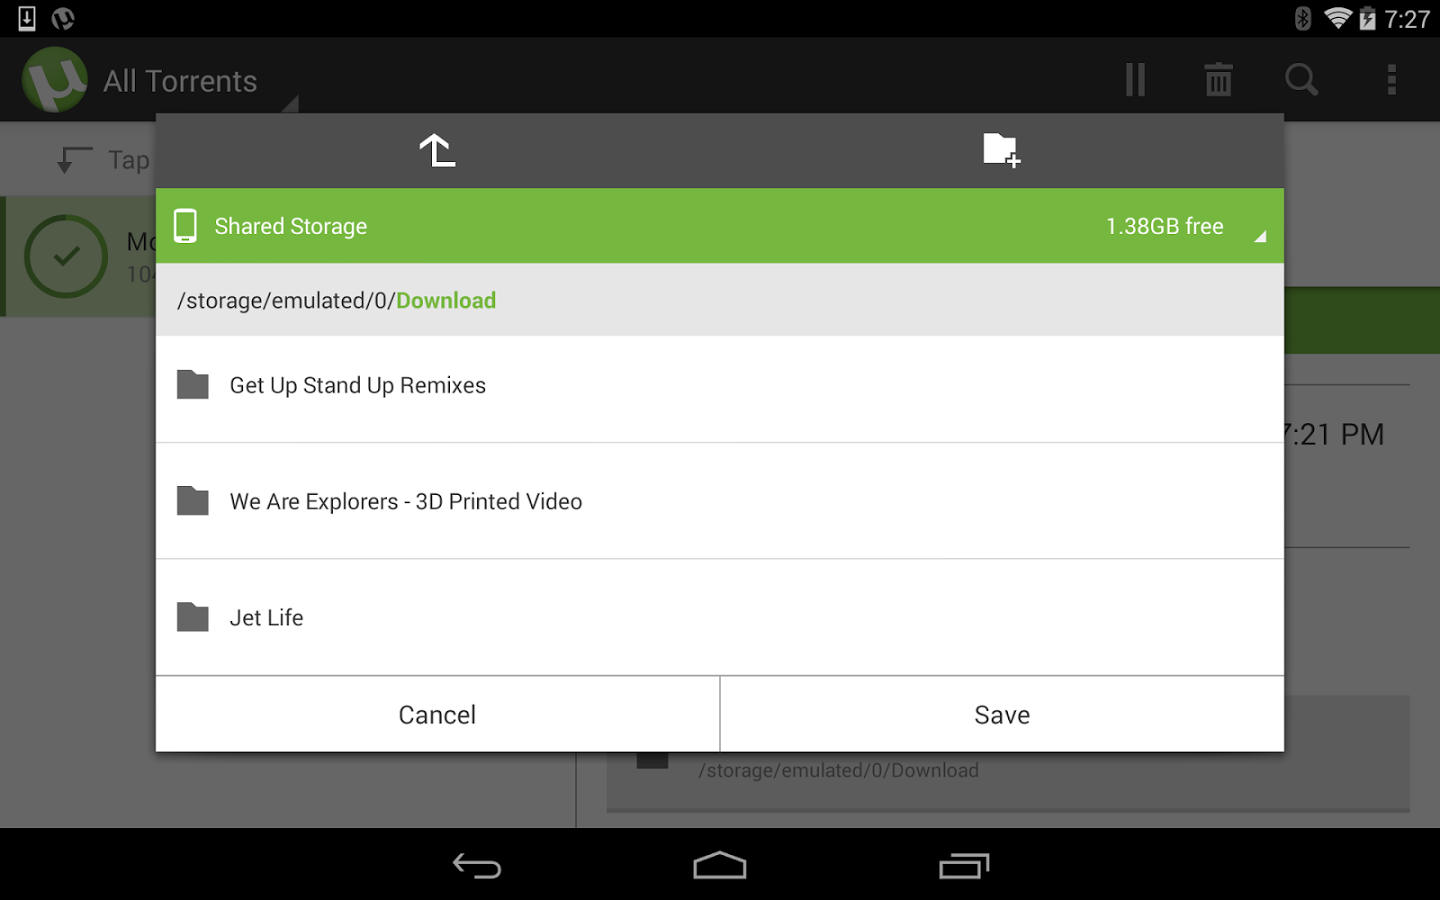 3 best android torrent apps how to download torrents on android | aw.